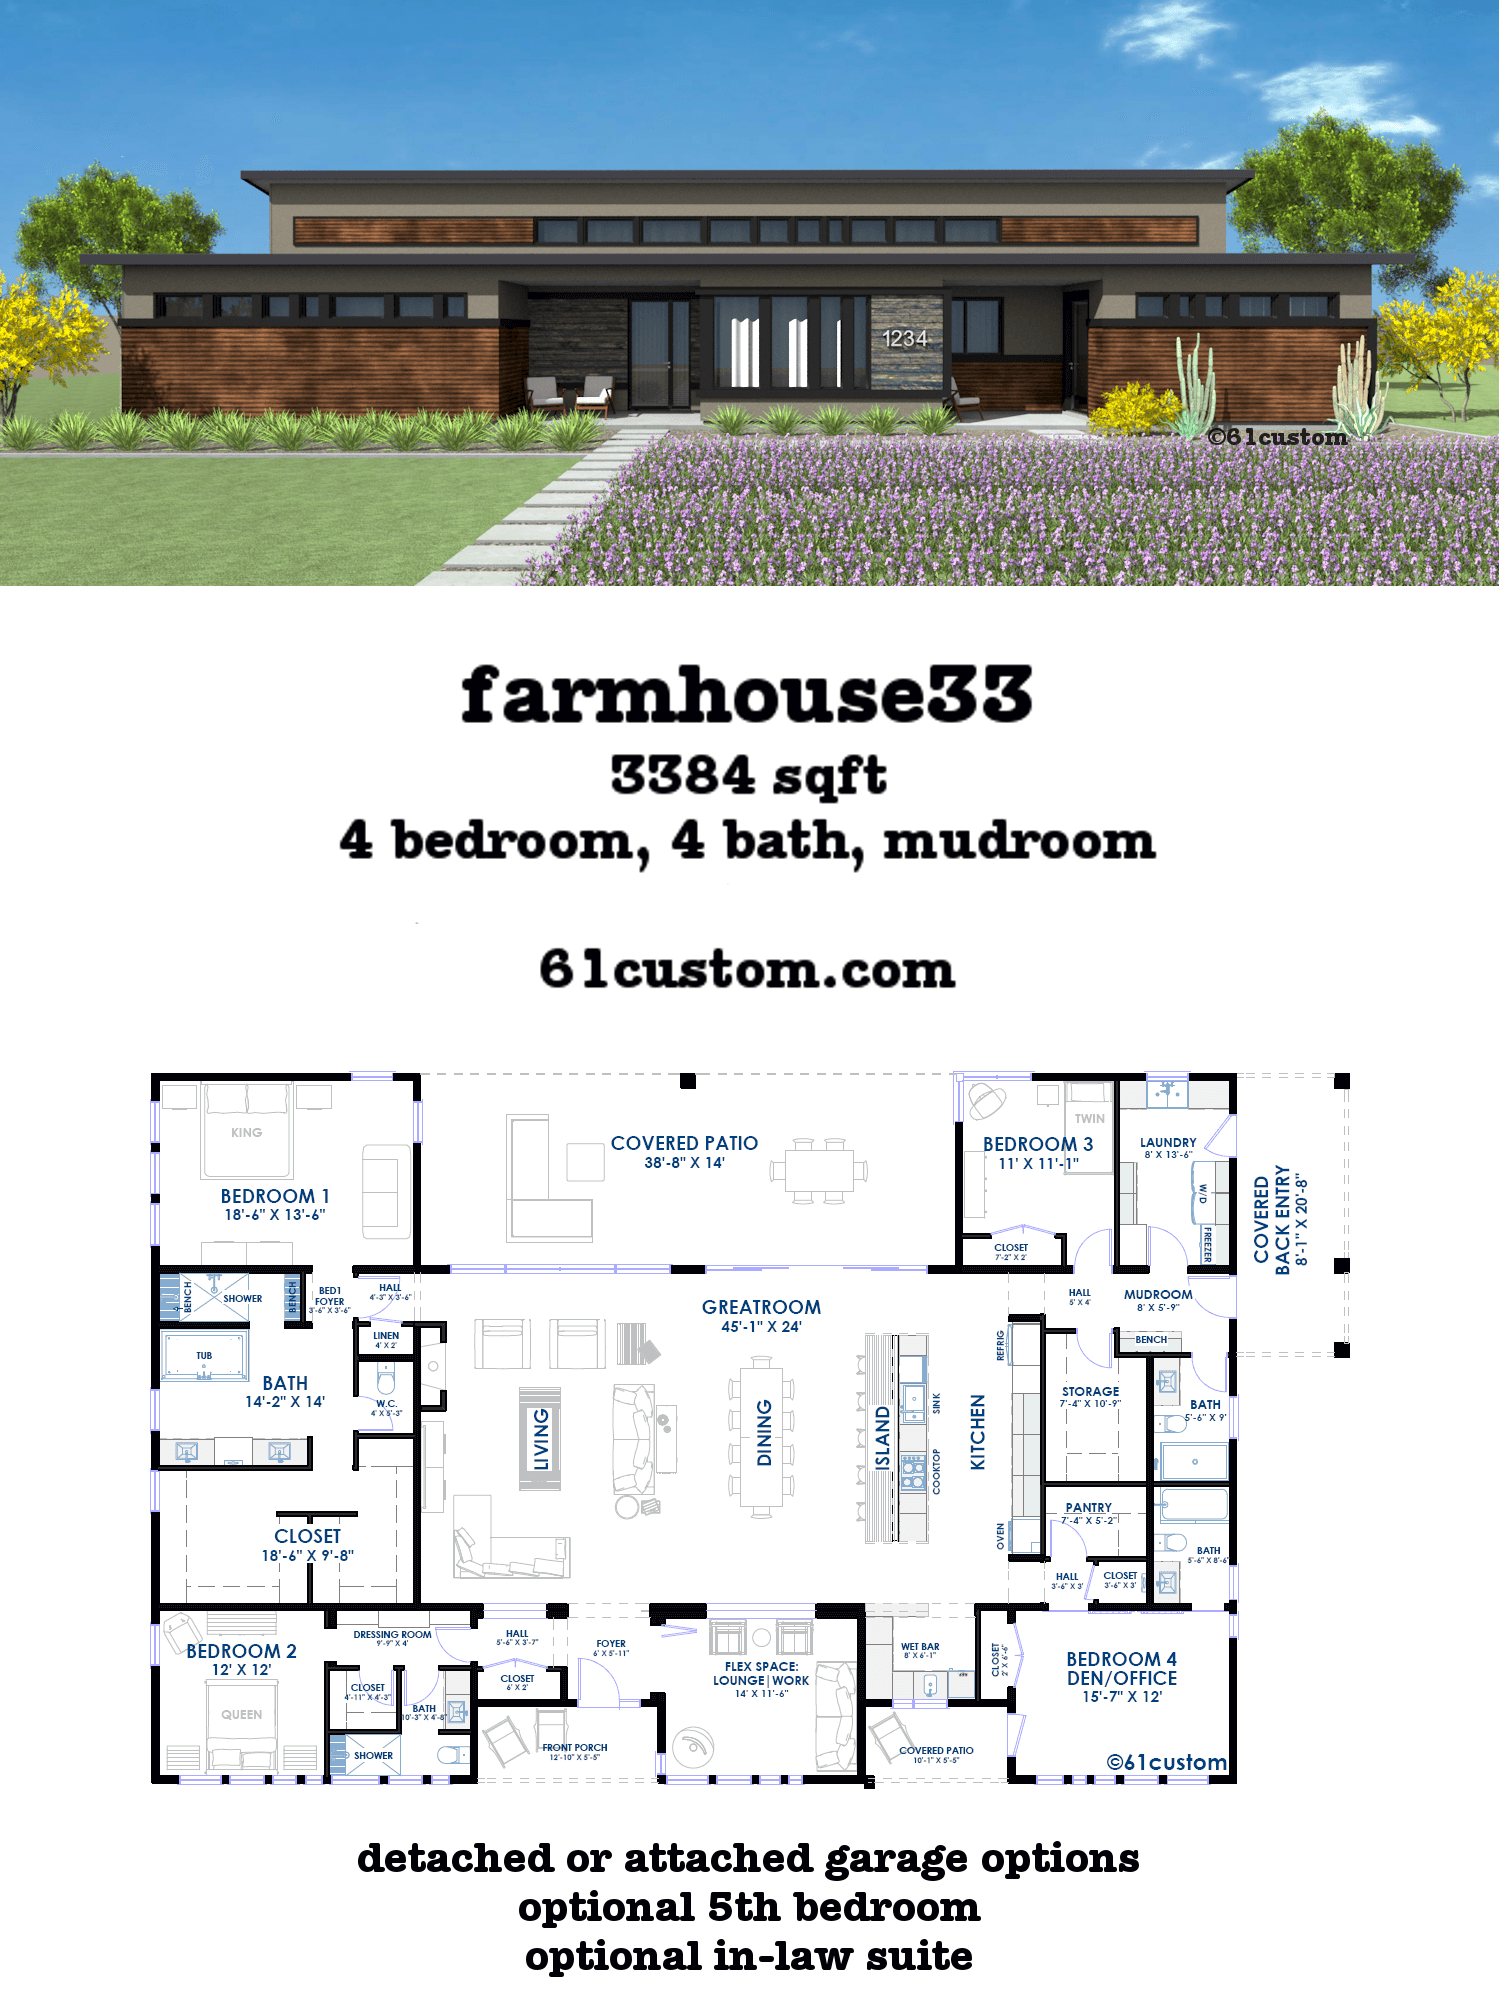 farmhouse33 modern farmhouse plan pinterest farmhouse plans